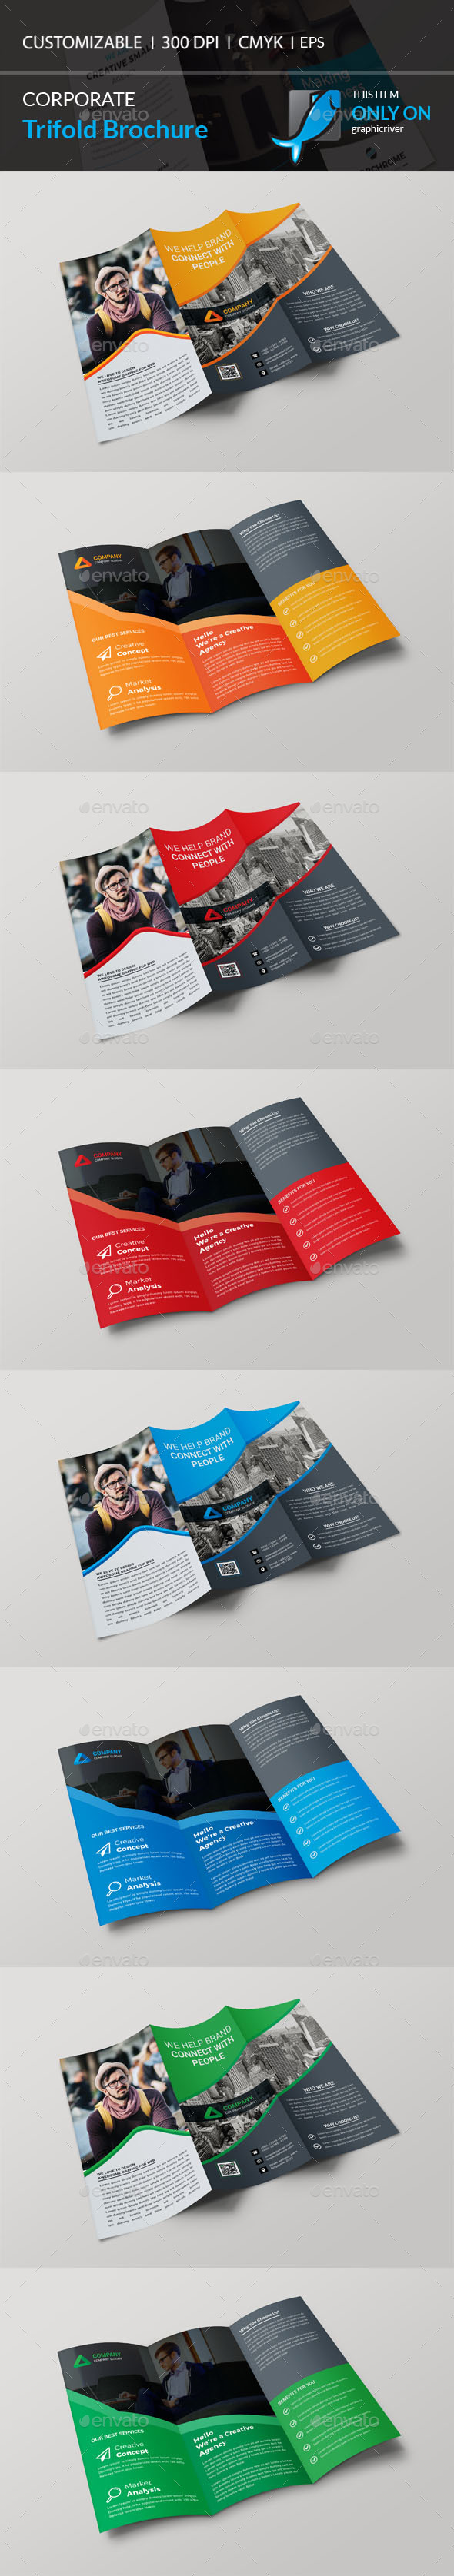 GraphicRiver Trifold Brochure 21157553